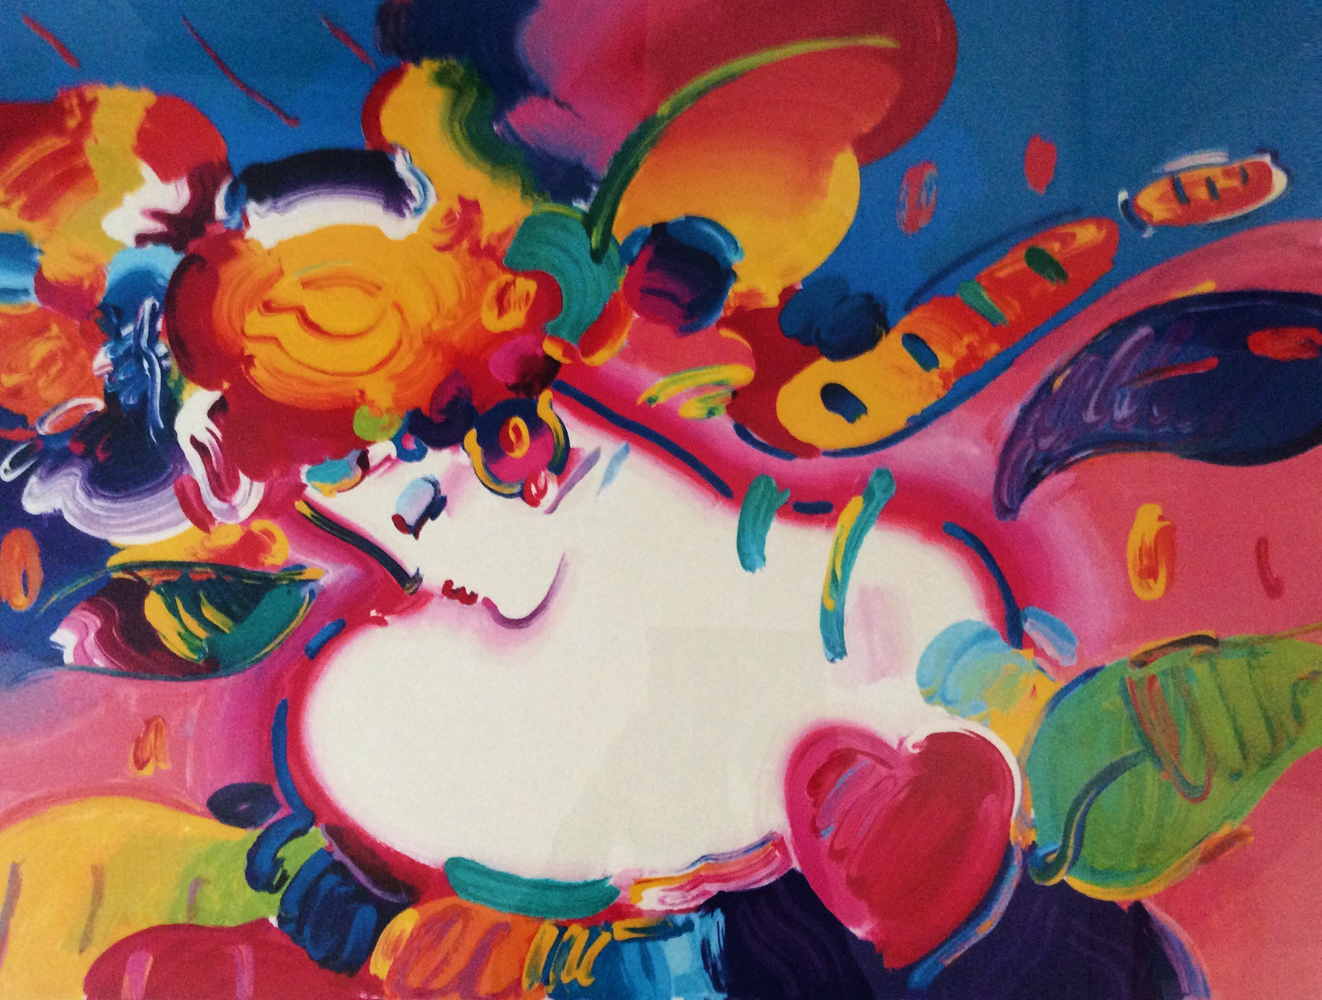 Flower Blossom Lady II, Unique Remarque 1998 by Peter Max